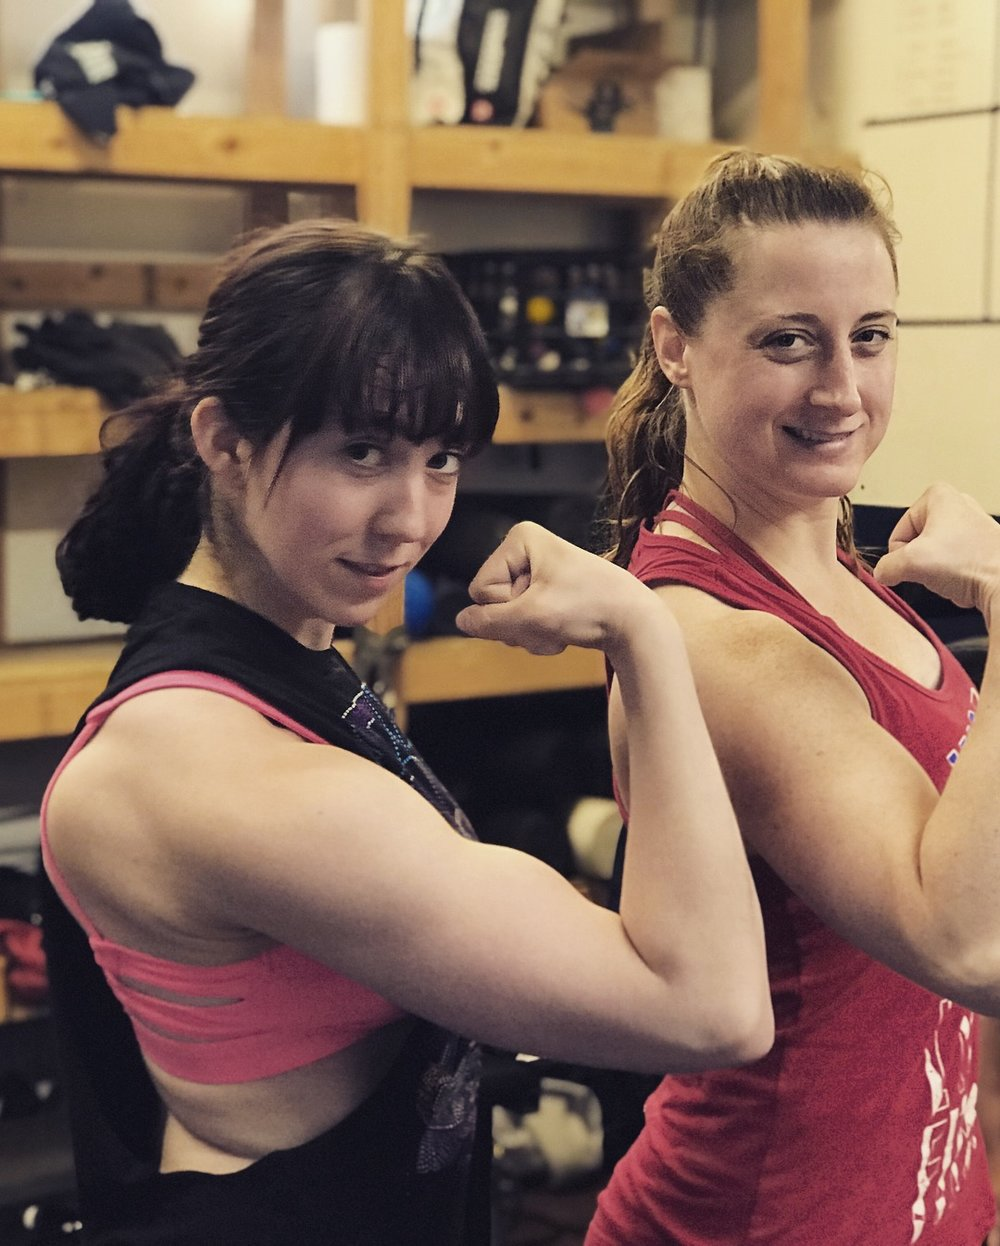 Megan B. and Merrilee with the gun show